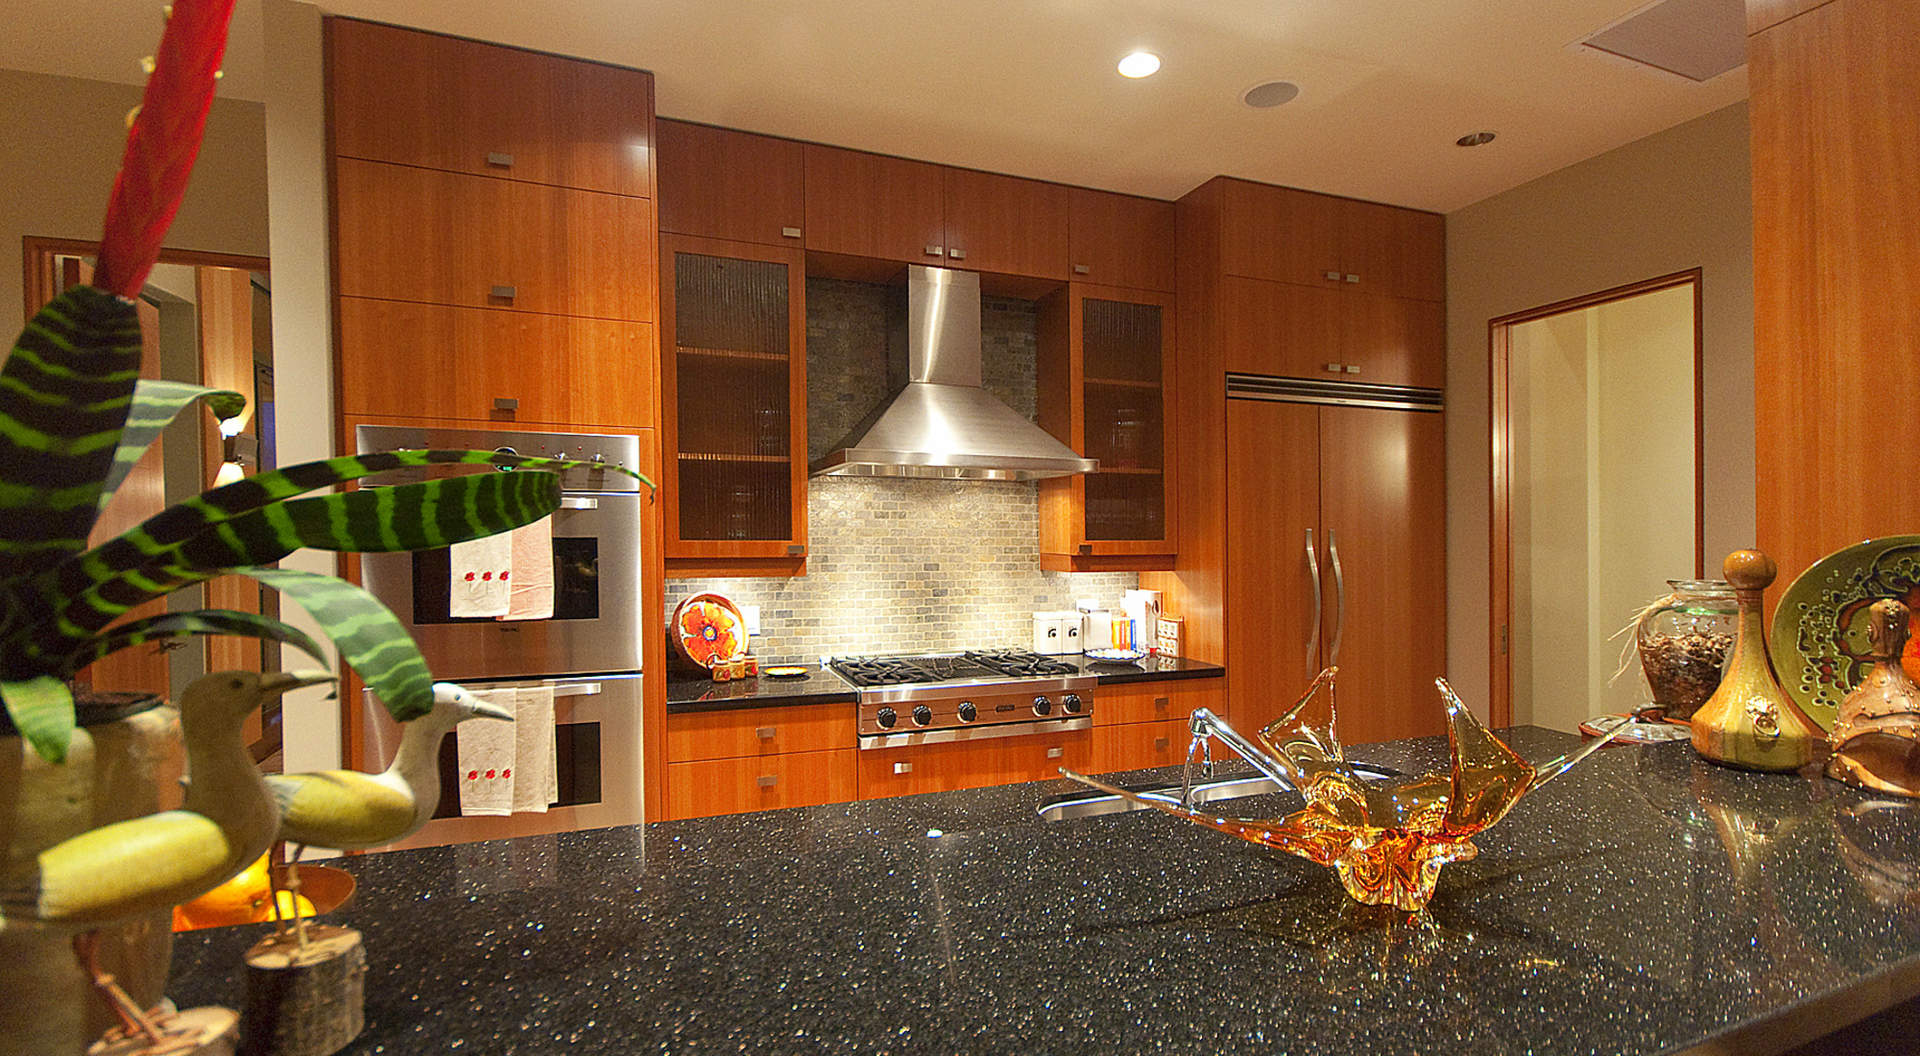 Top Appilance Package and Granite Counter Tops